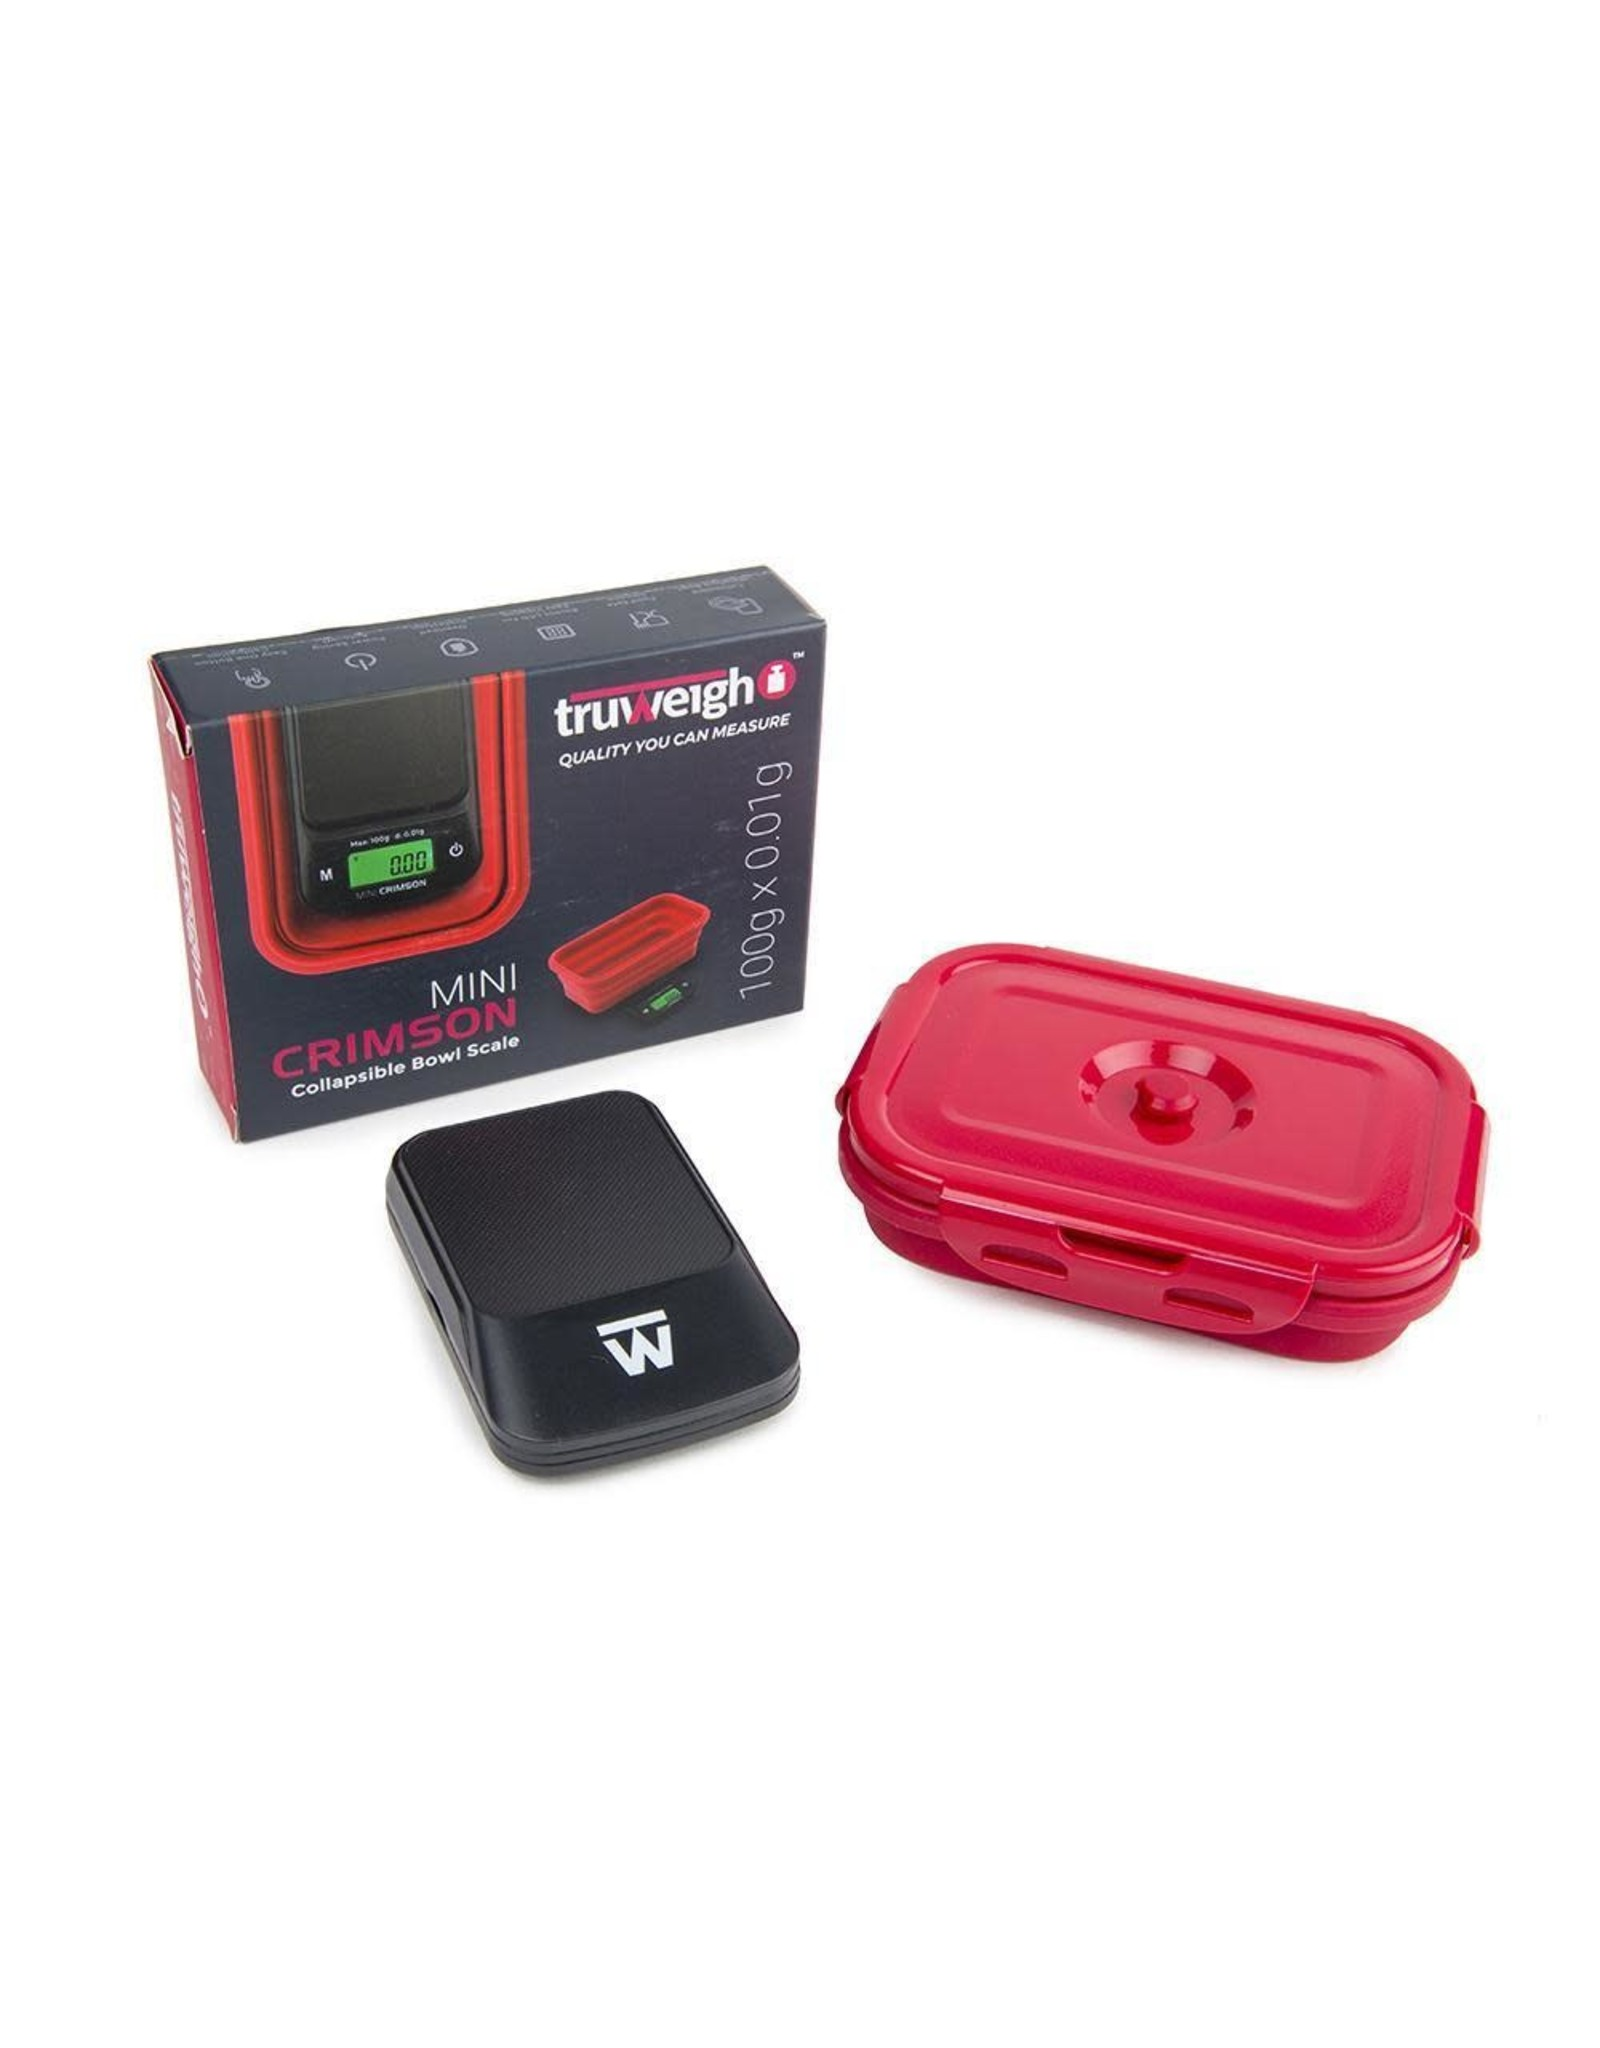 truweigh Truweigh Mini Crimson 100x.01g Collapsible bowl scale